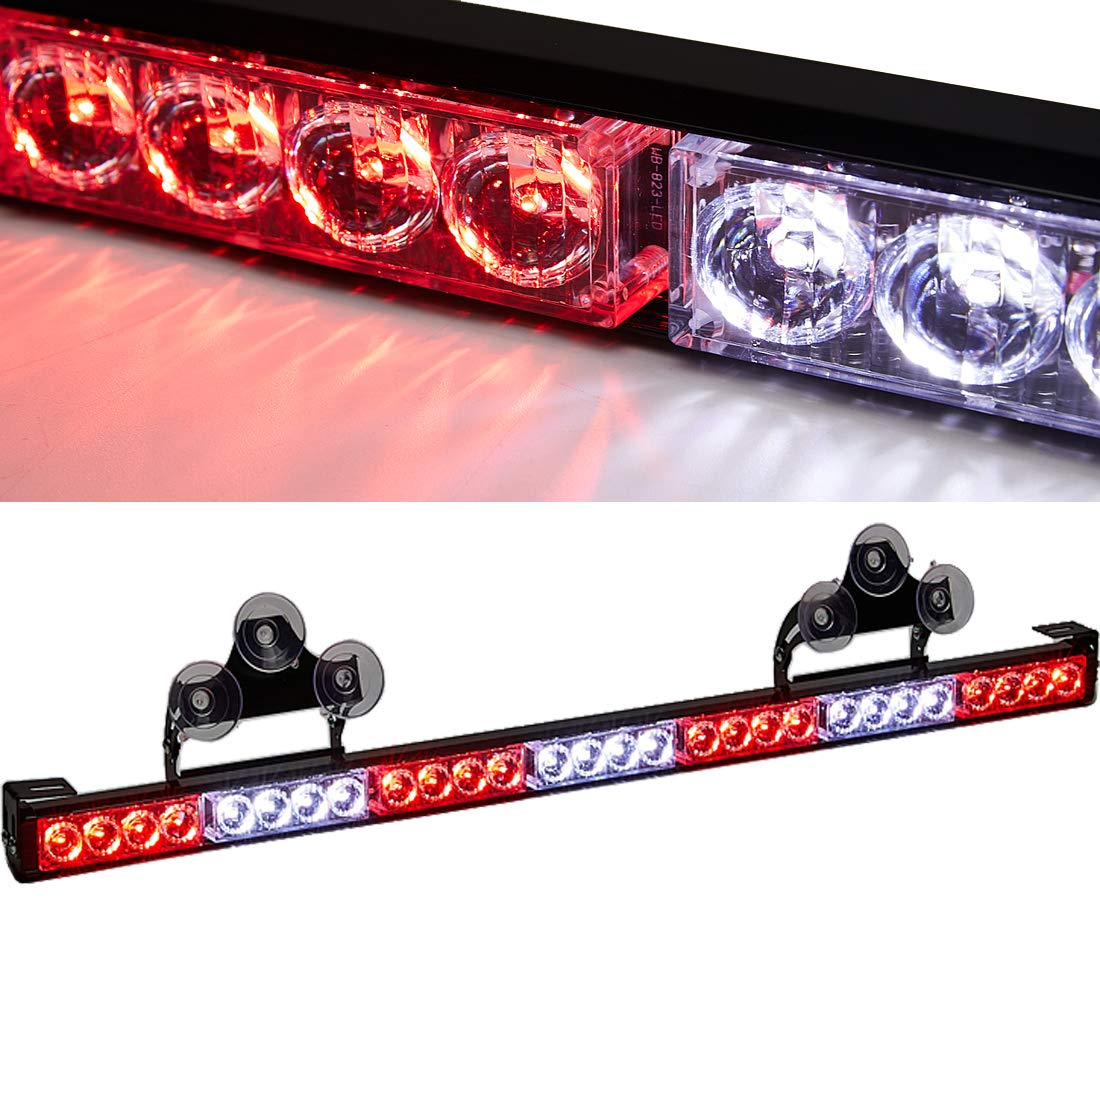 SmallfatW 32 Inch 28 LED Hazard Emergency Warning Tow Traffic Advisor Flash Strobe Light Bar with Cigar Lighter and Suction Cups (Red/White)